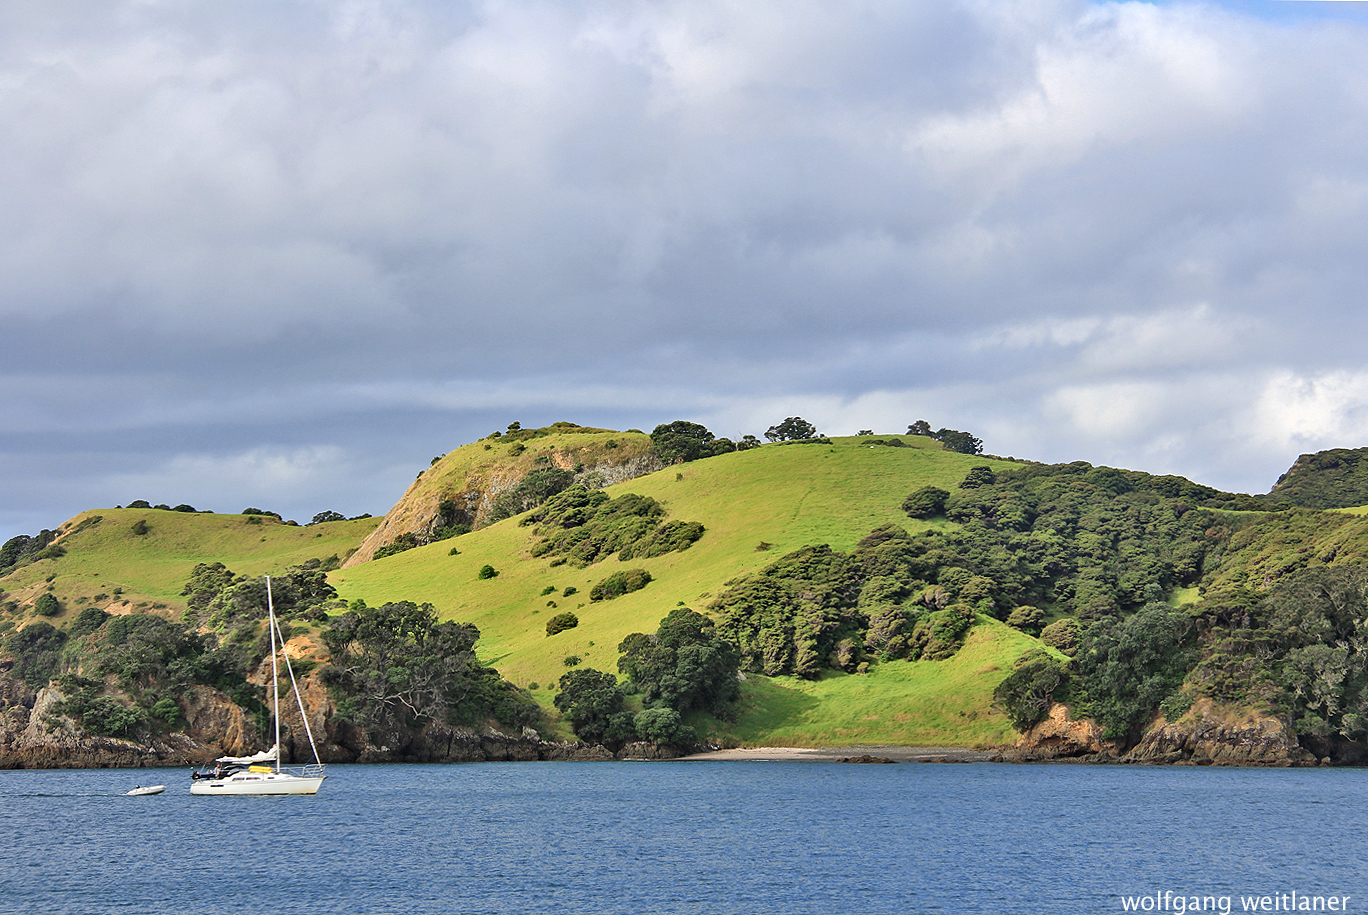 Herbsttag, Bay of Islands, Neuseeland